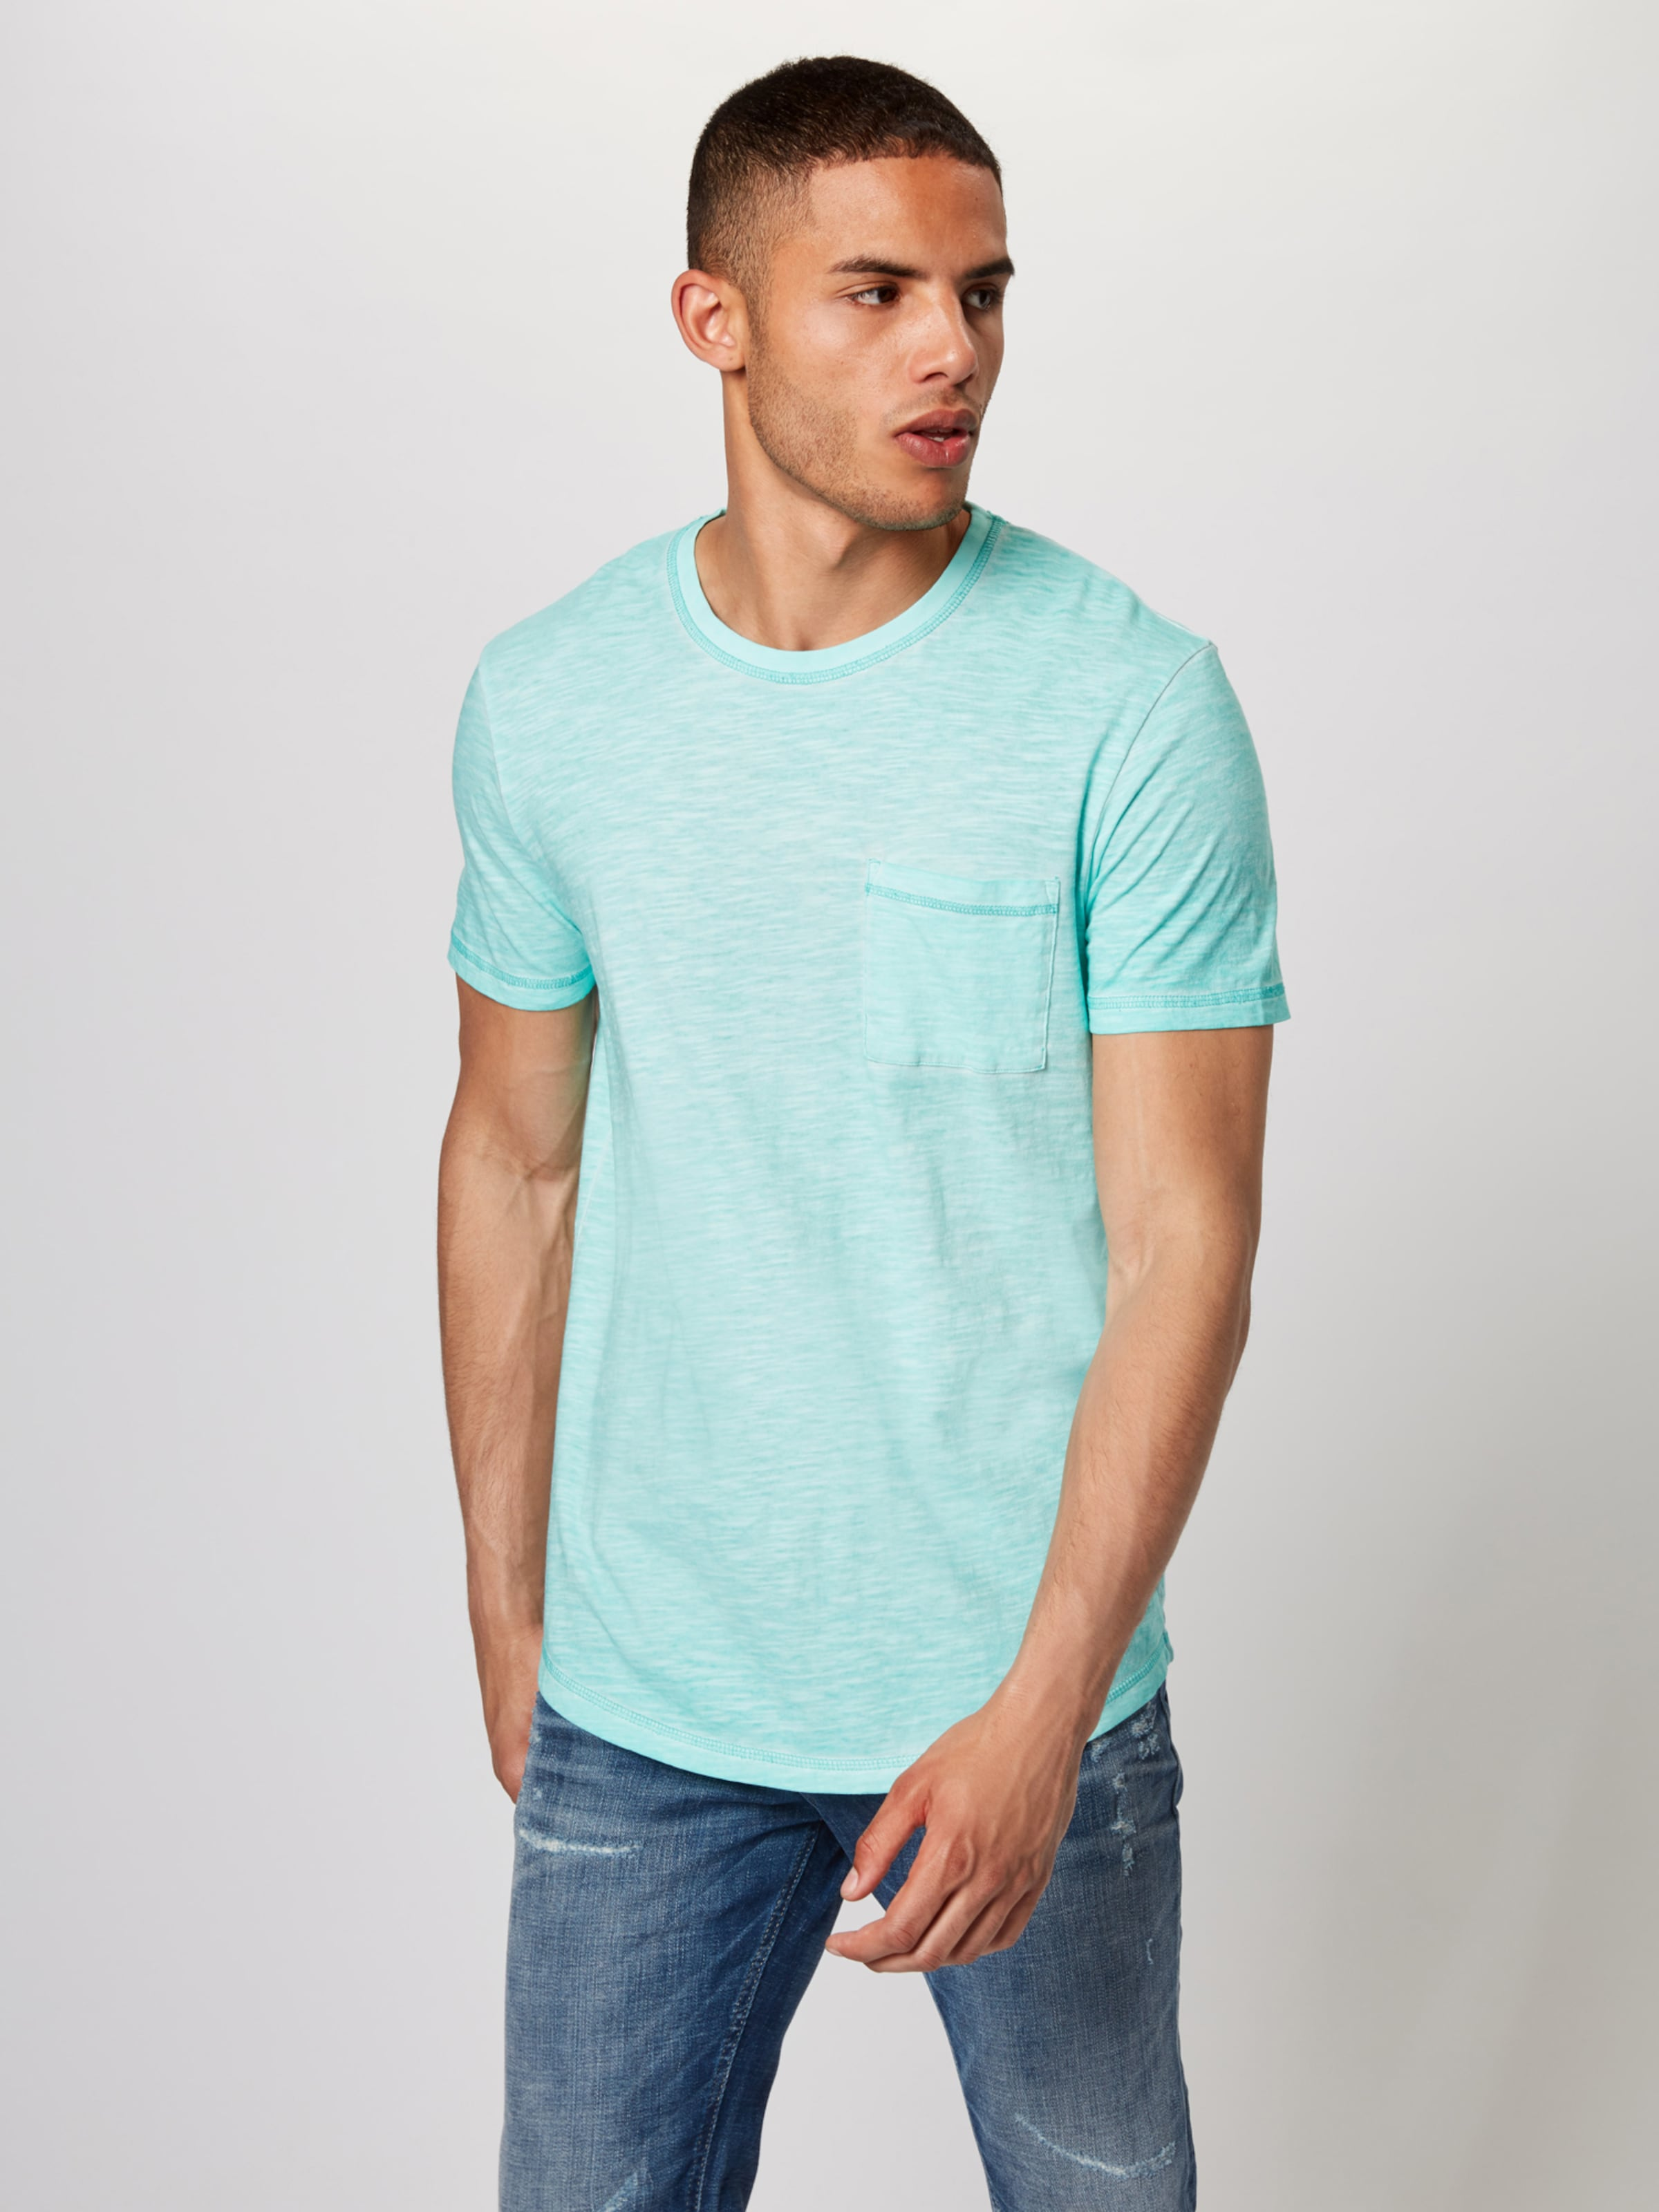 By Edc shirt Esprit En Aqua T sBtxQdrCh